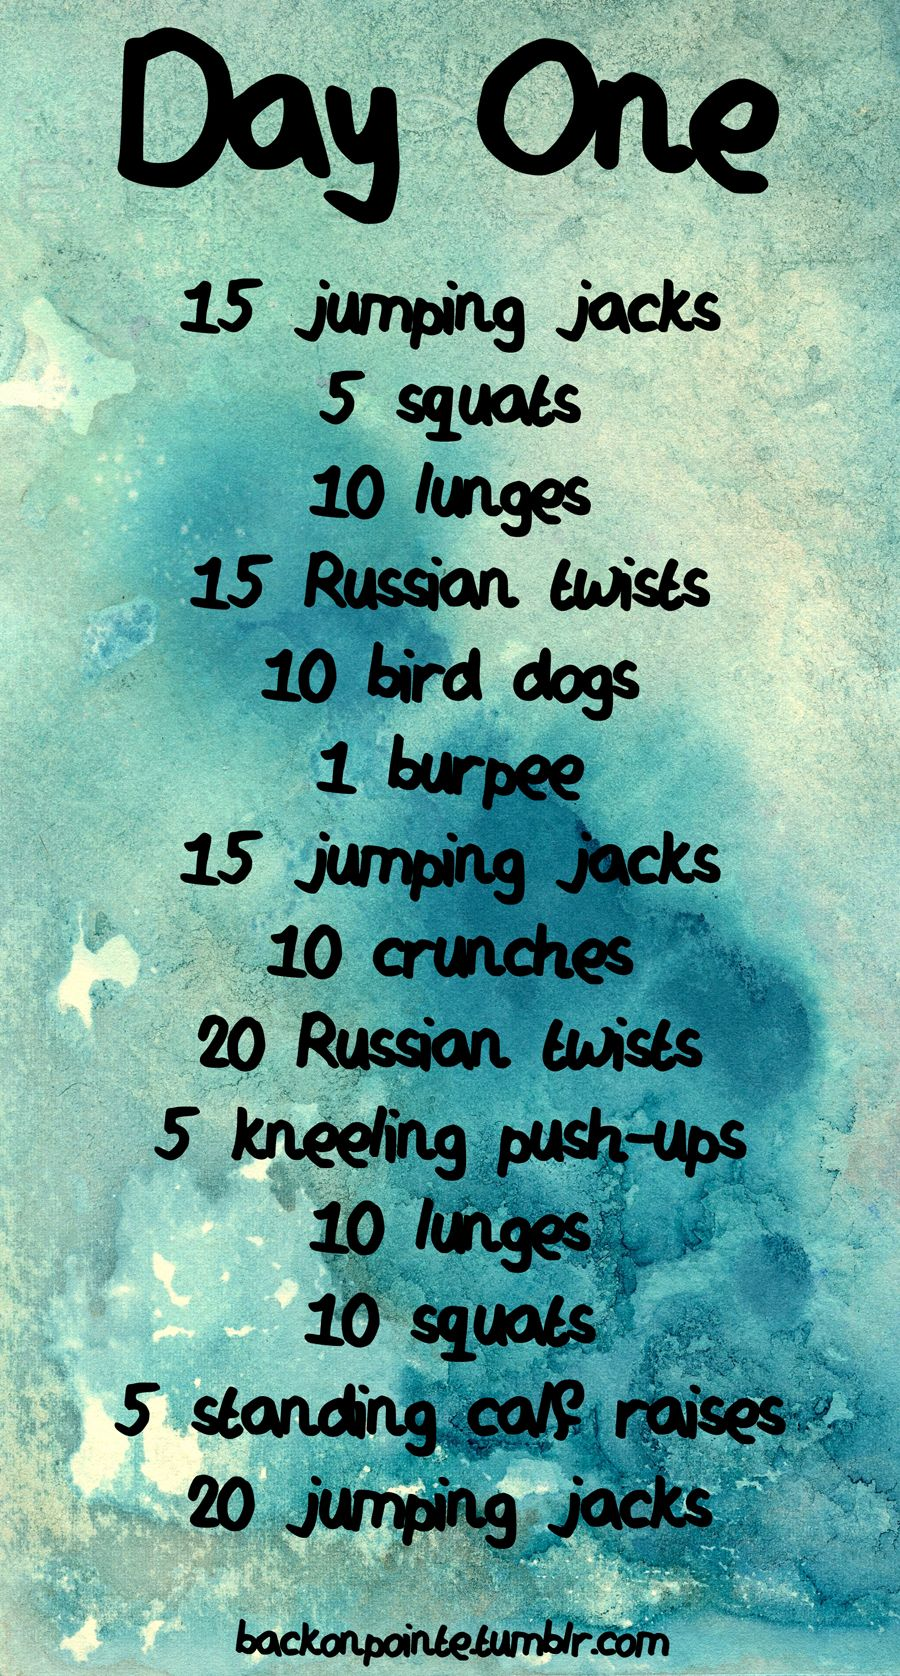 Best Way To Burn Fat Without Losing Muscle